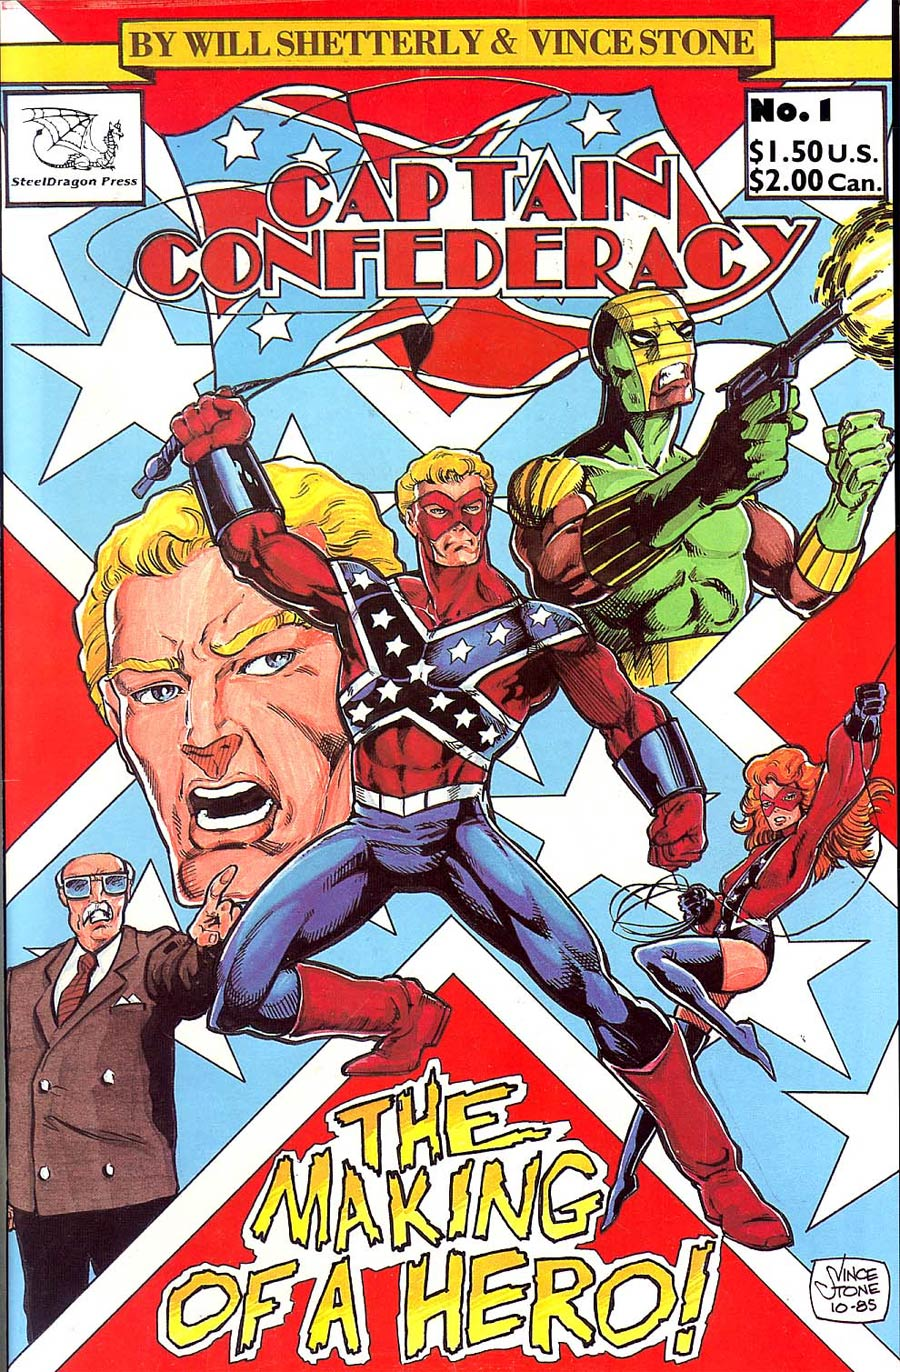 Captain Confederacy #1